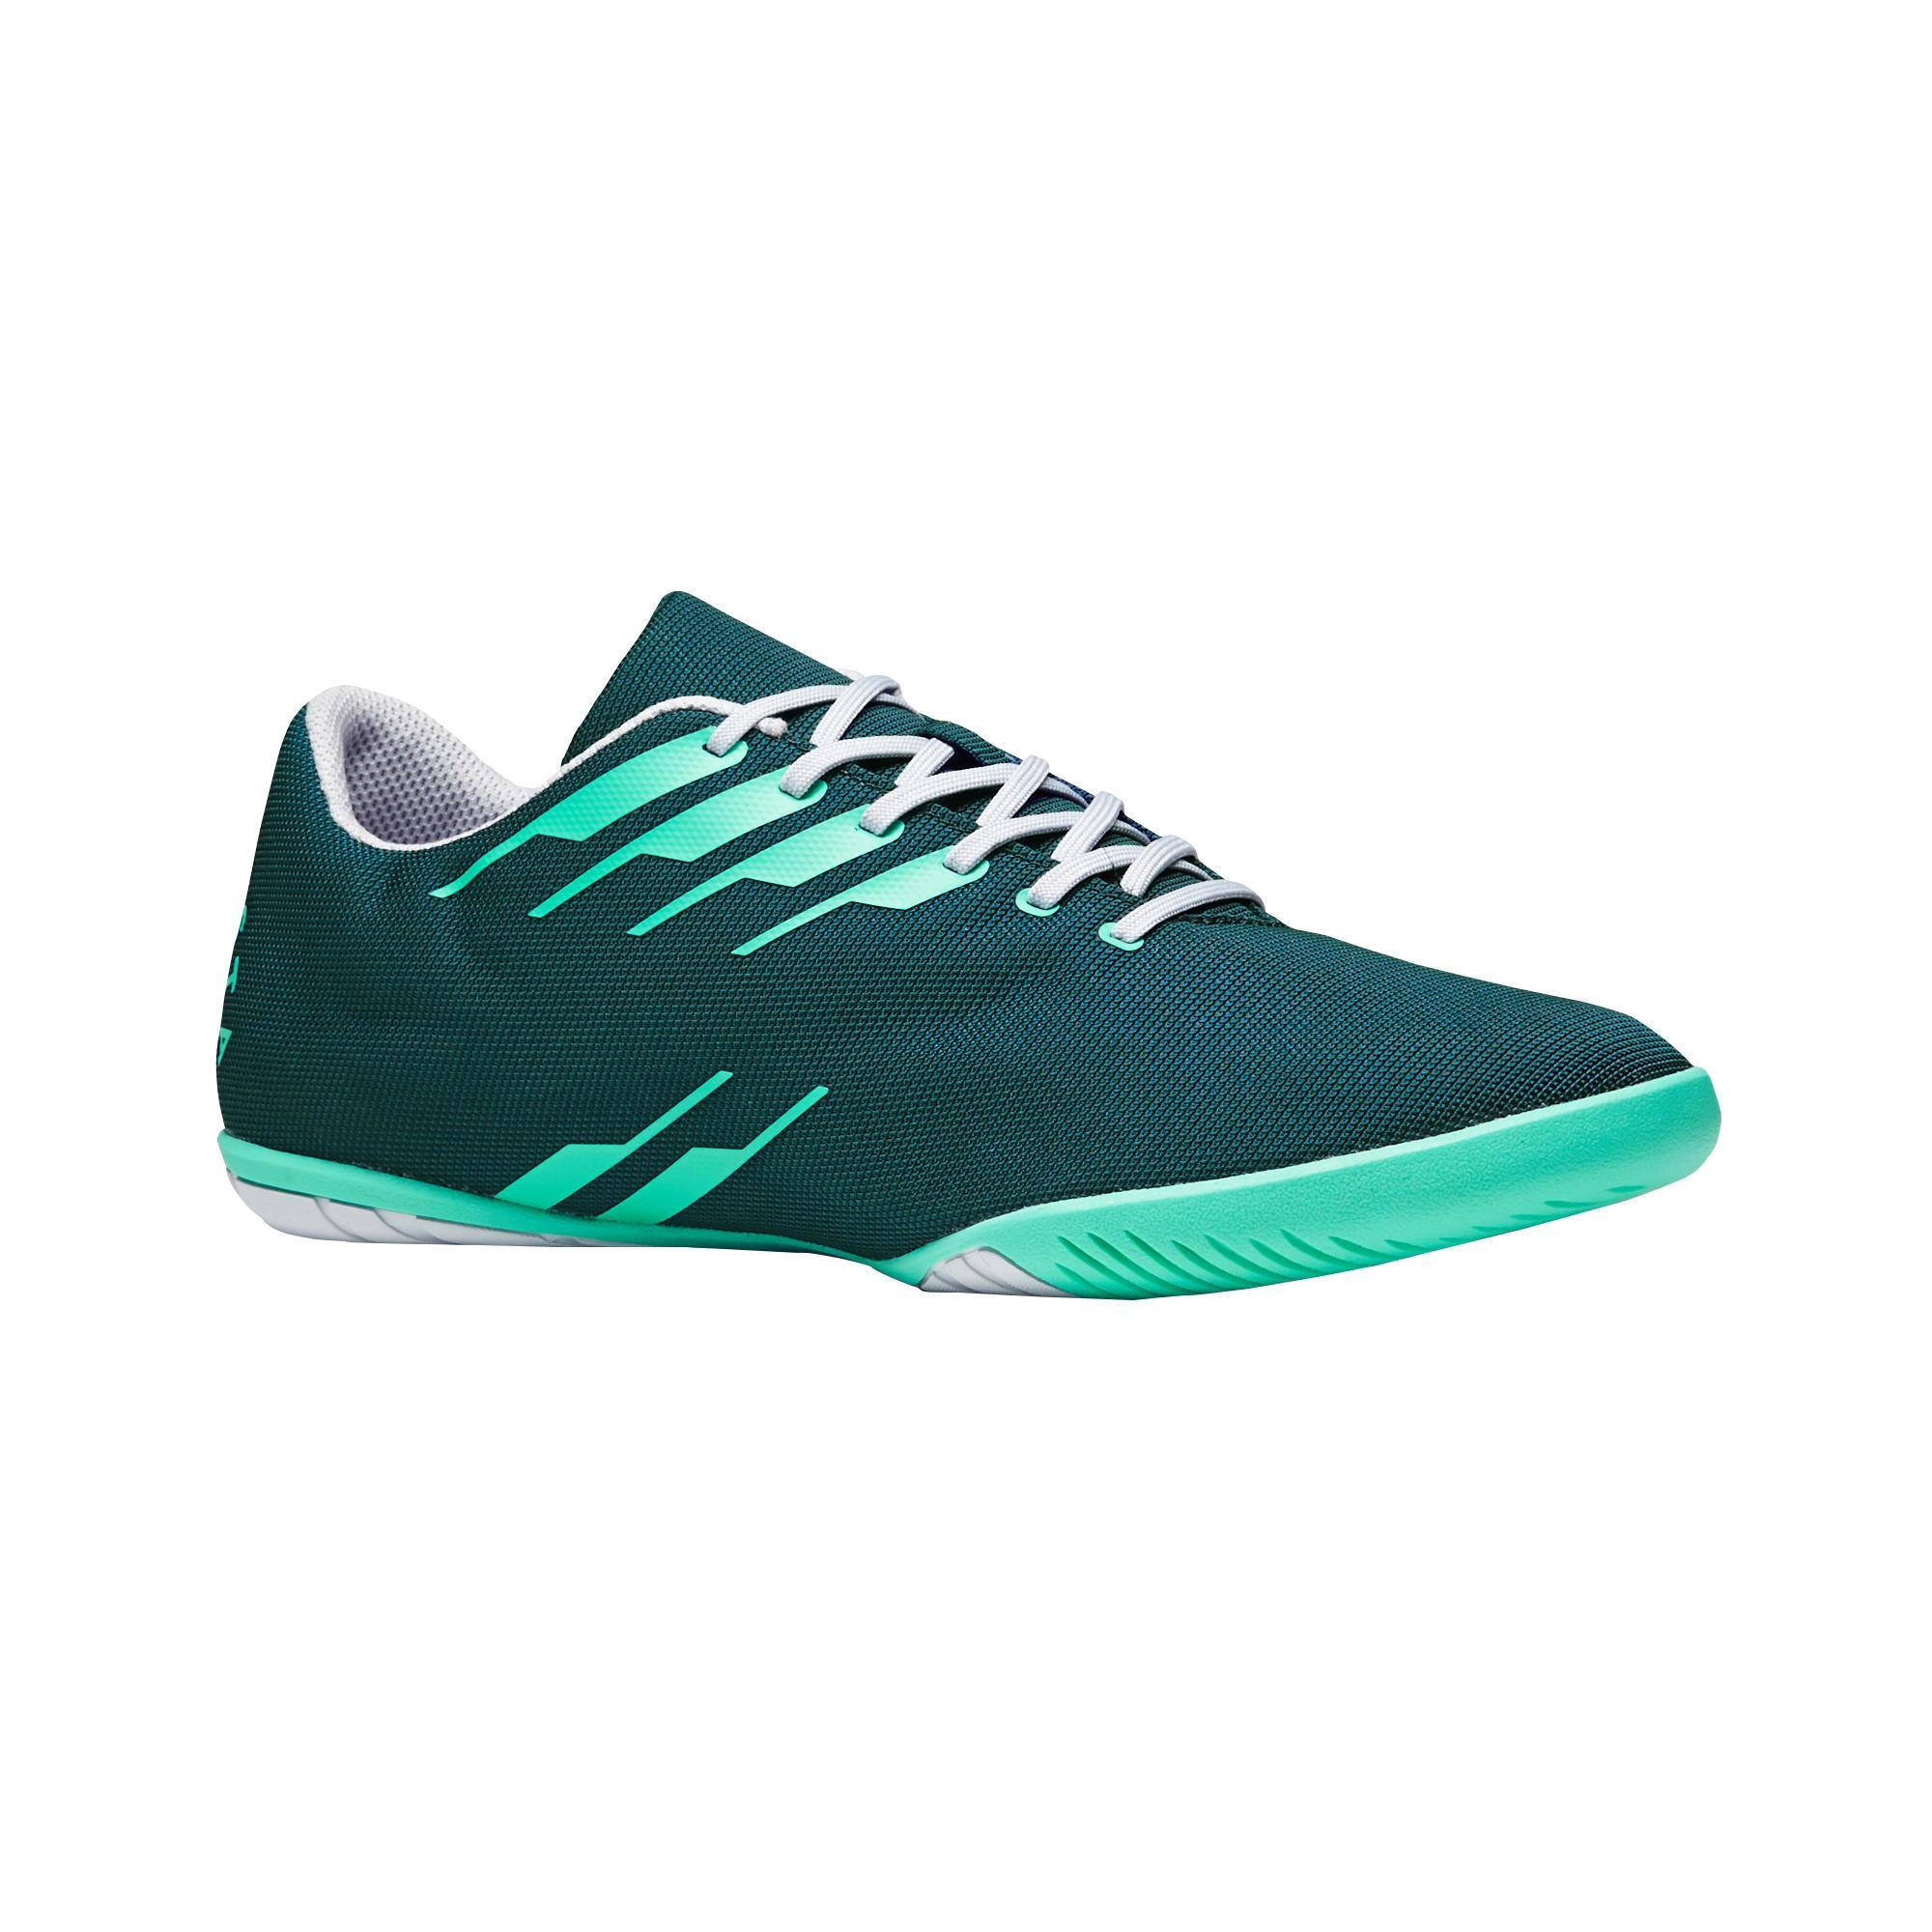 302f8d41d92 Adult s football shoes hard pitch   short synthetic grass CLR 300 ...